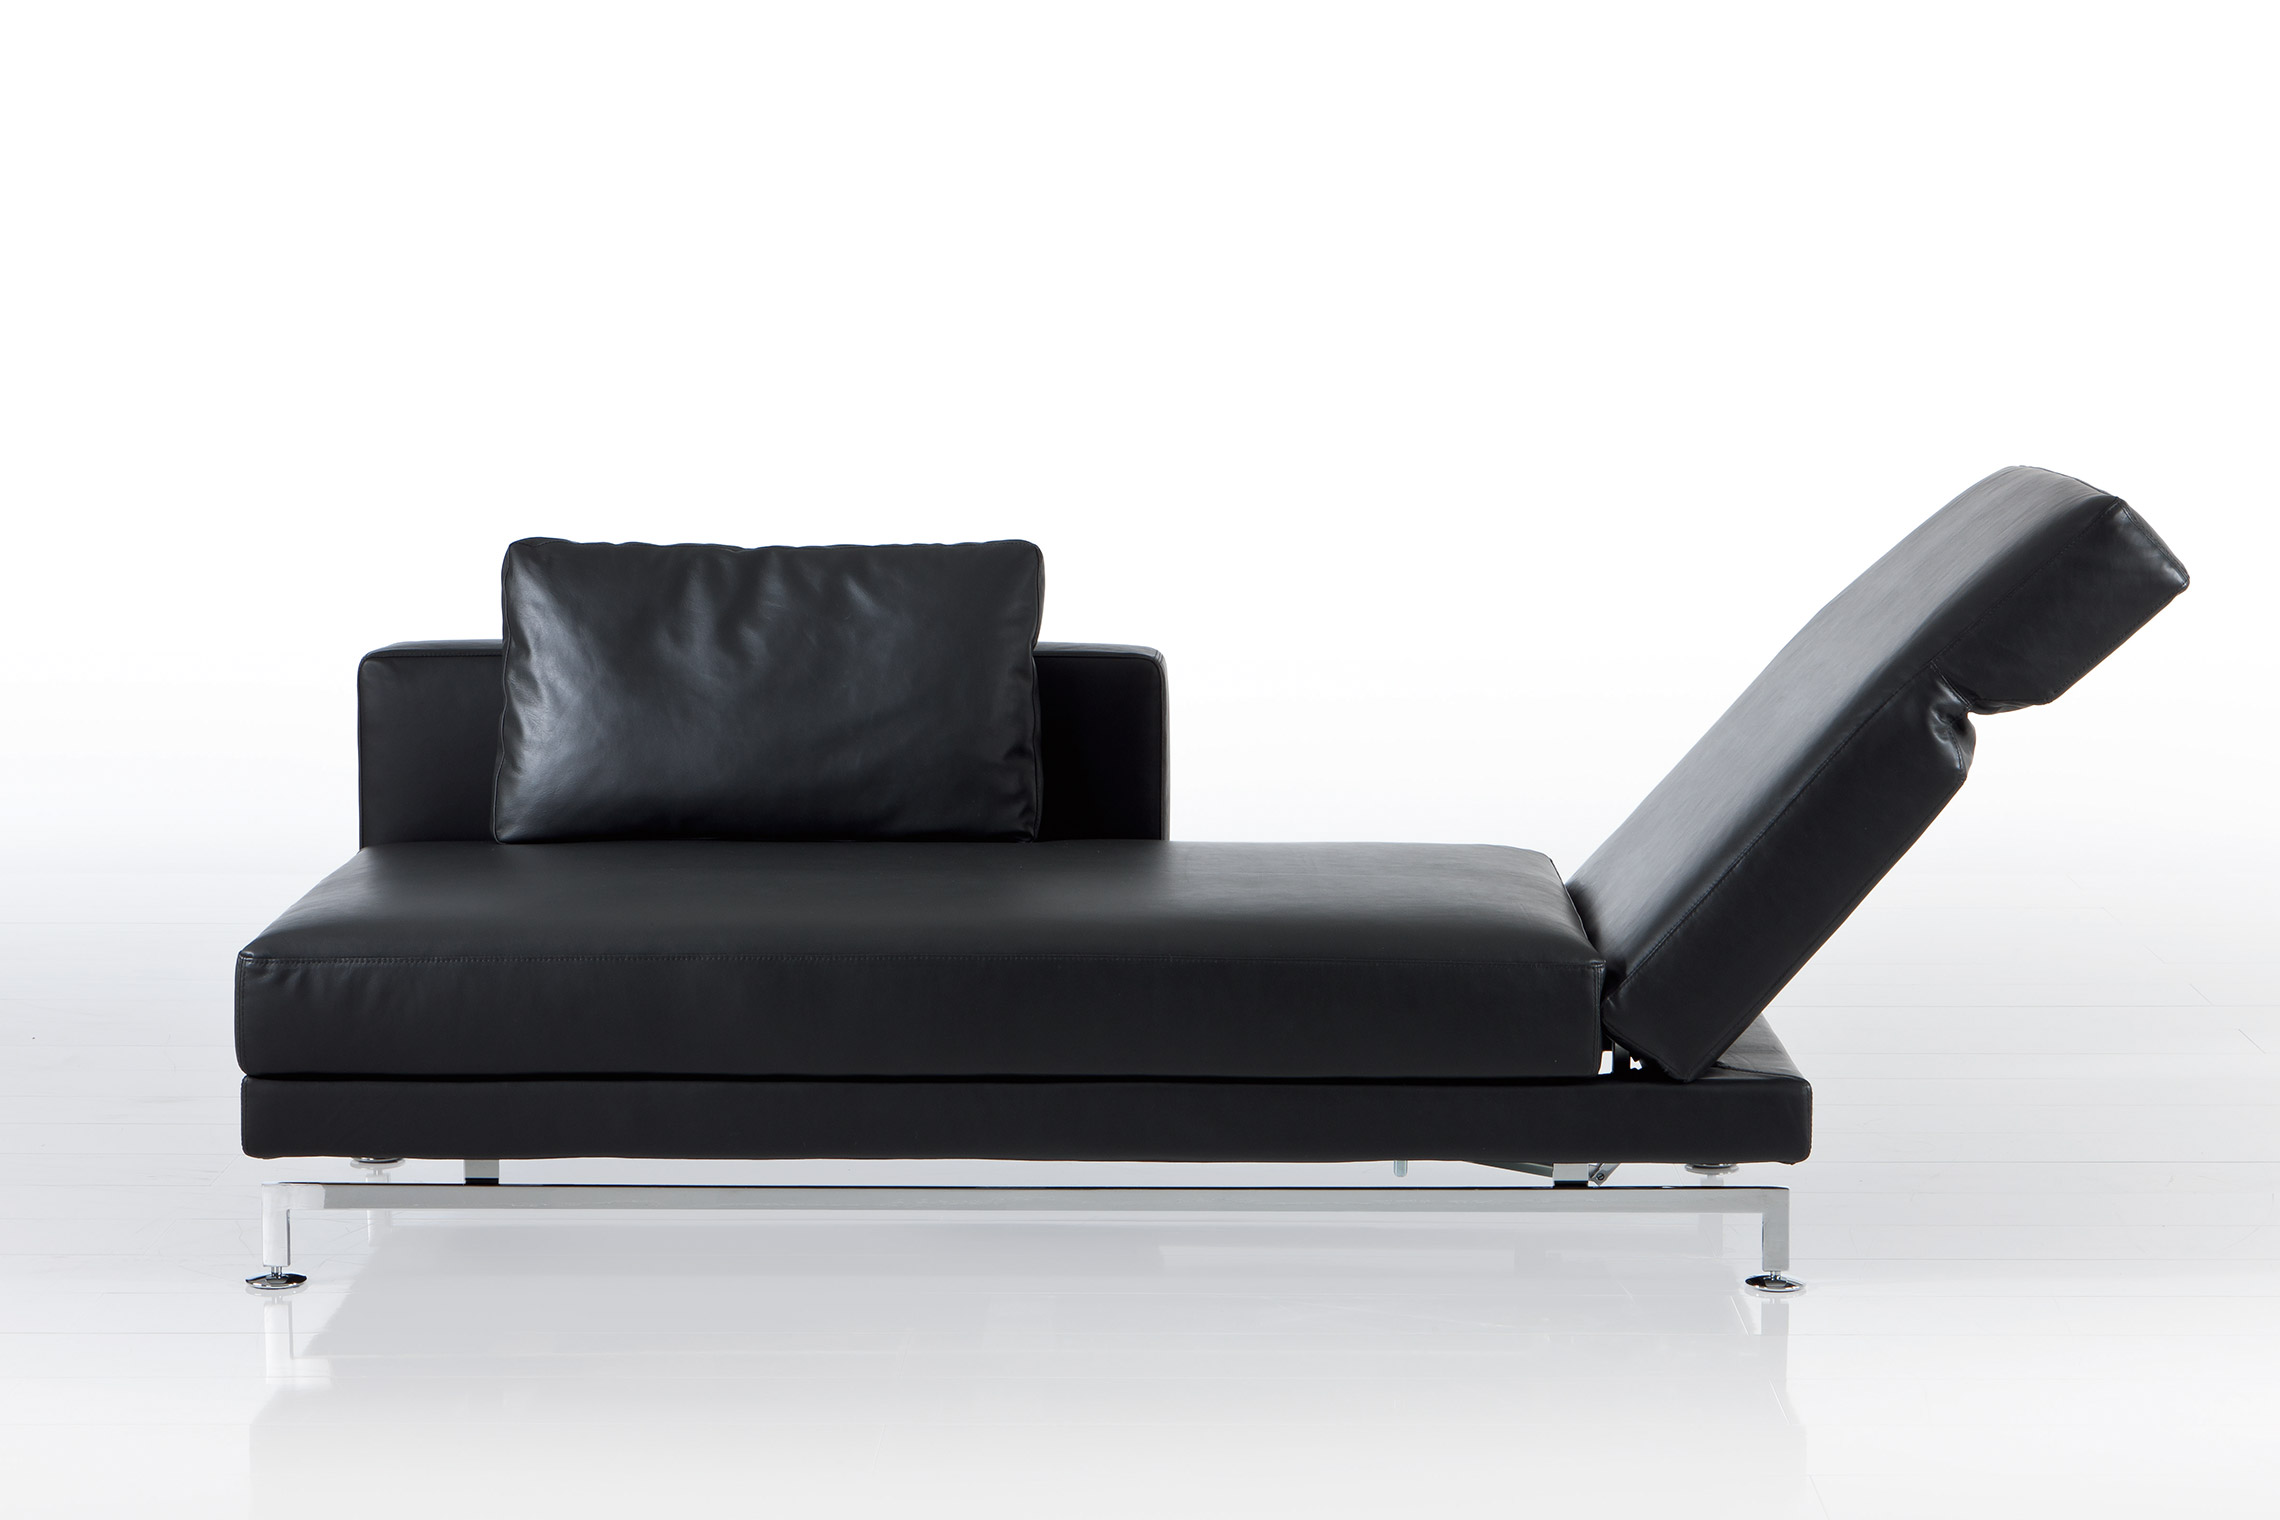 chaise longues. Black Bedroom Furniture Sets. Home Design Ideas